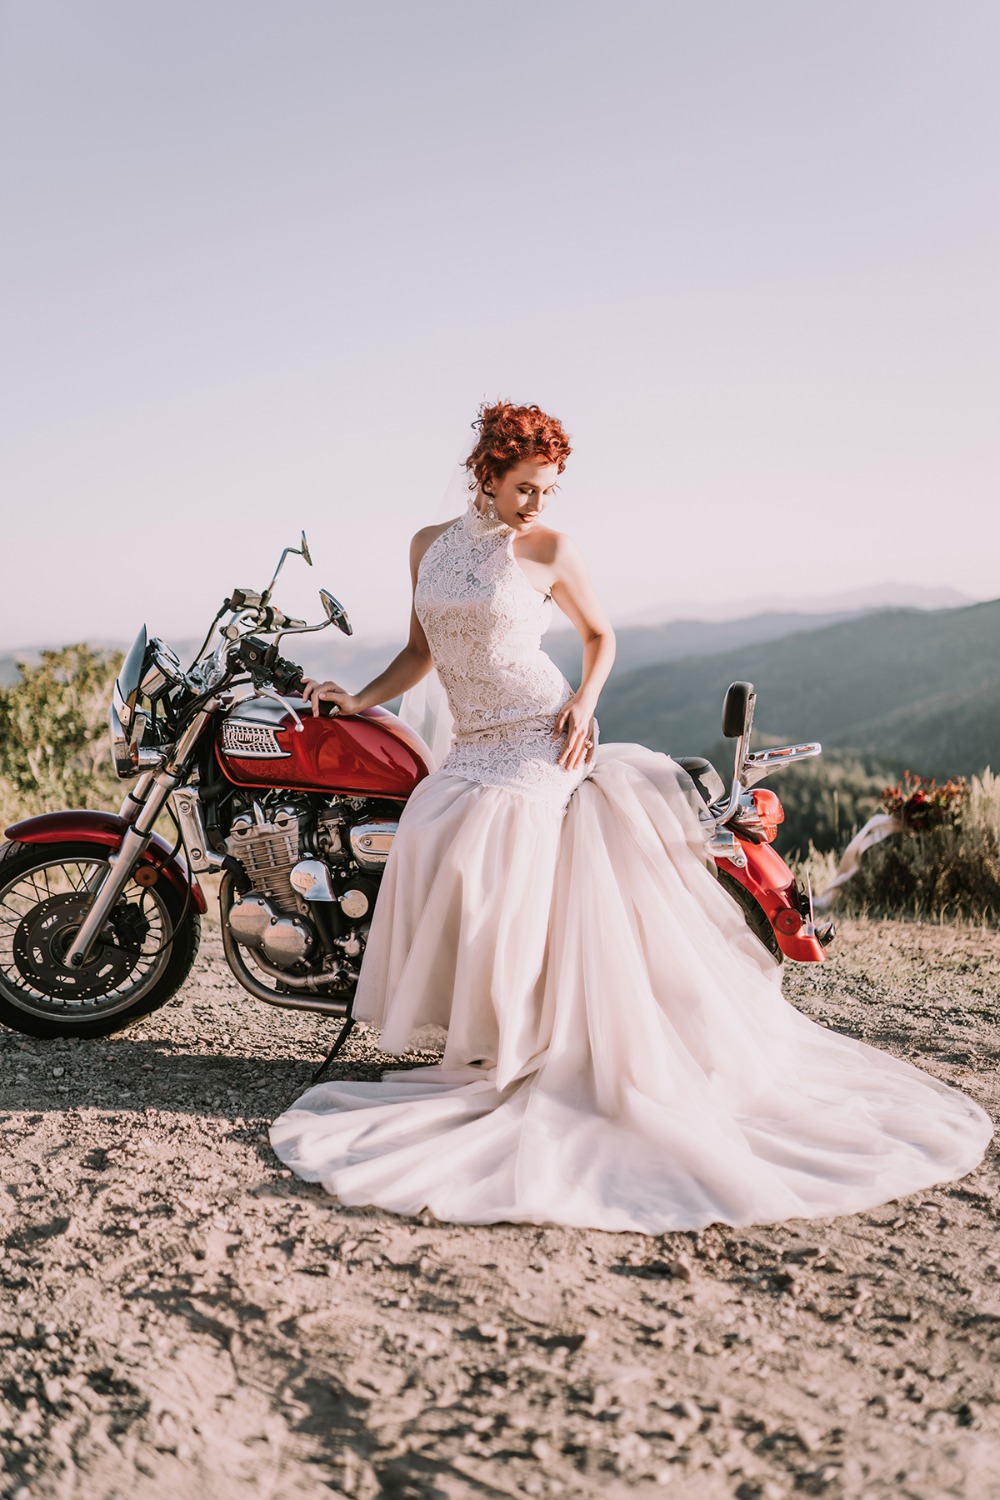 Betsy Couture Vintage Wedding Gown with detachable skirt